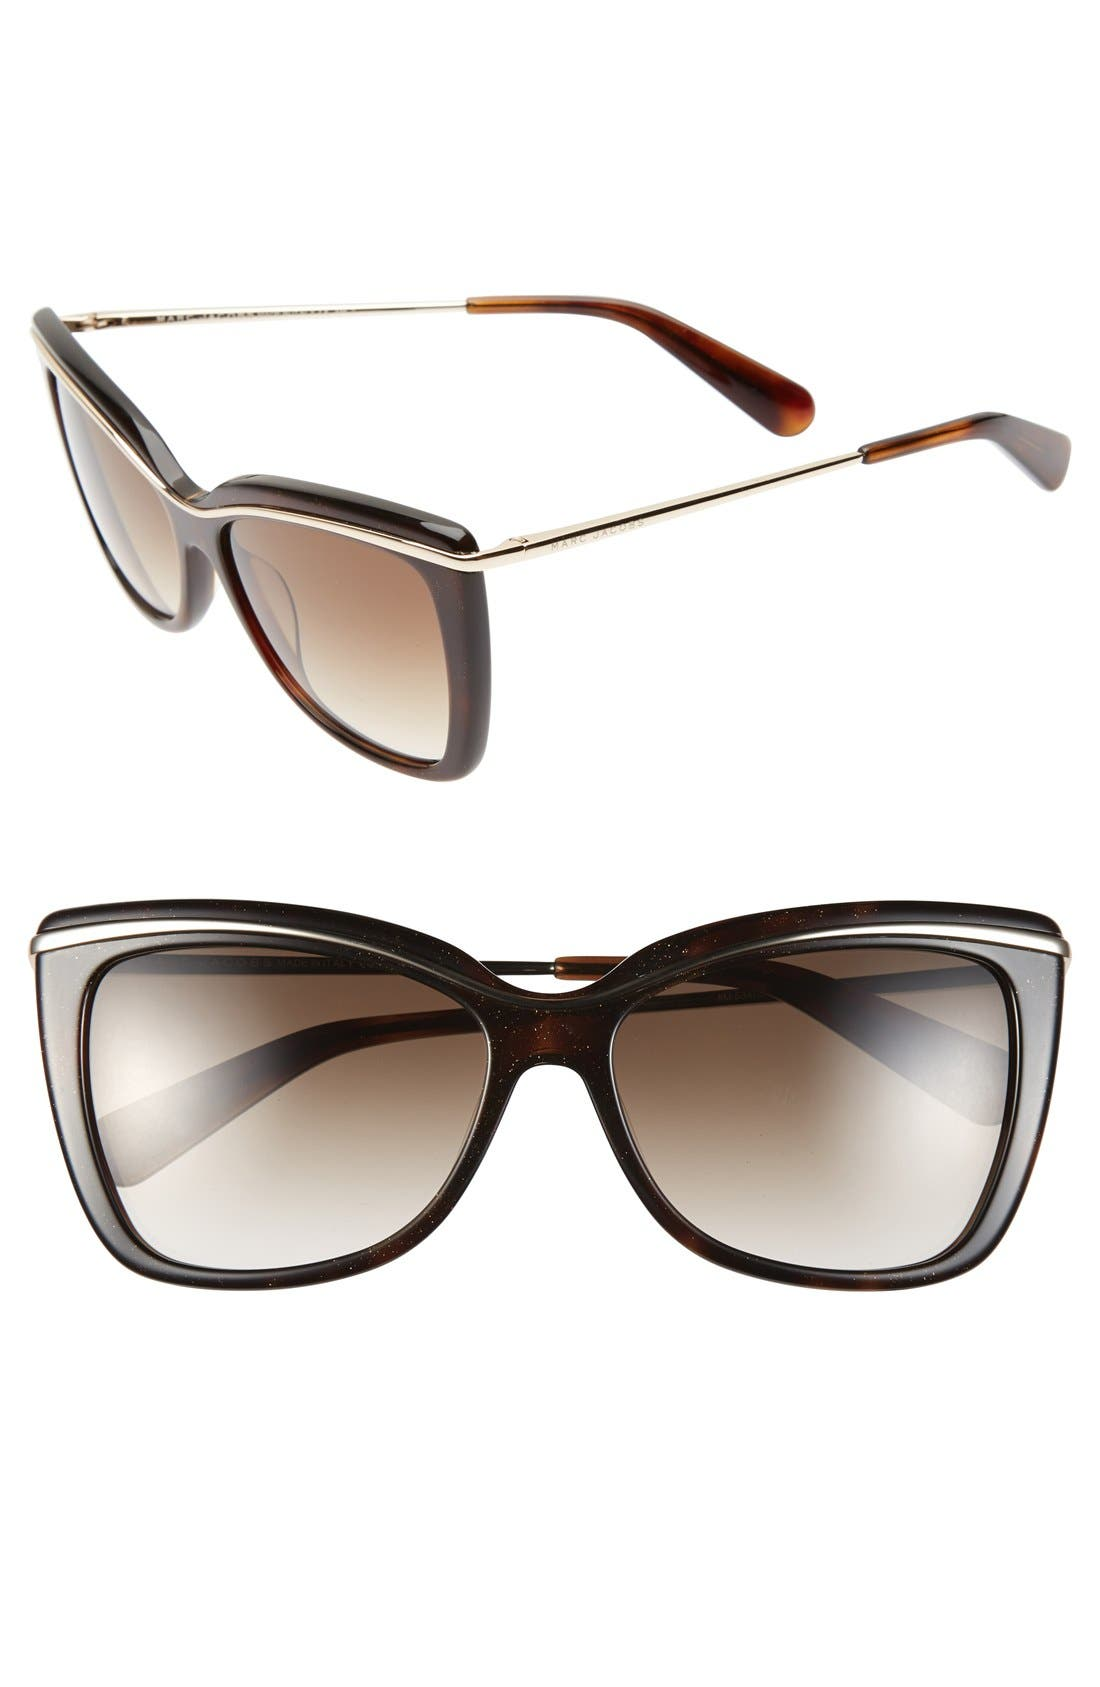 Alternate Image 1 Selected - MARC JACOBS 56mm Cat Eye Sunglasses